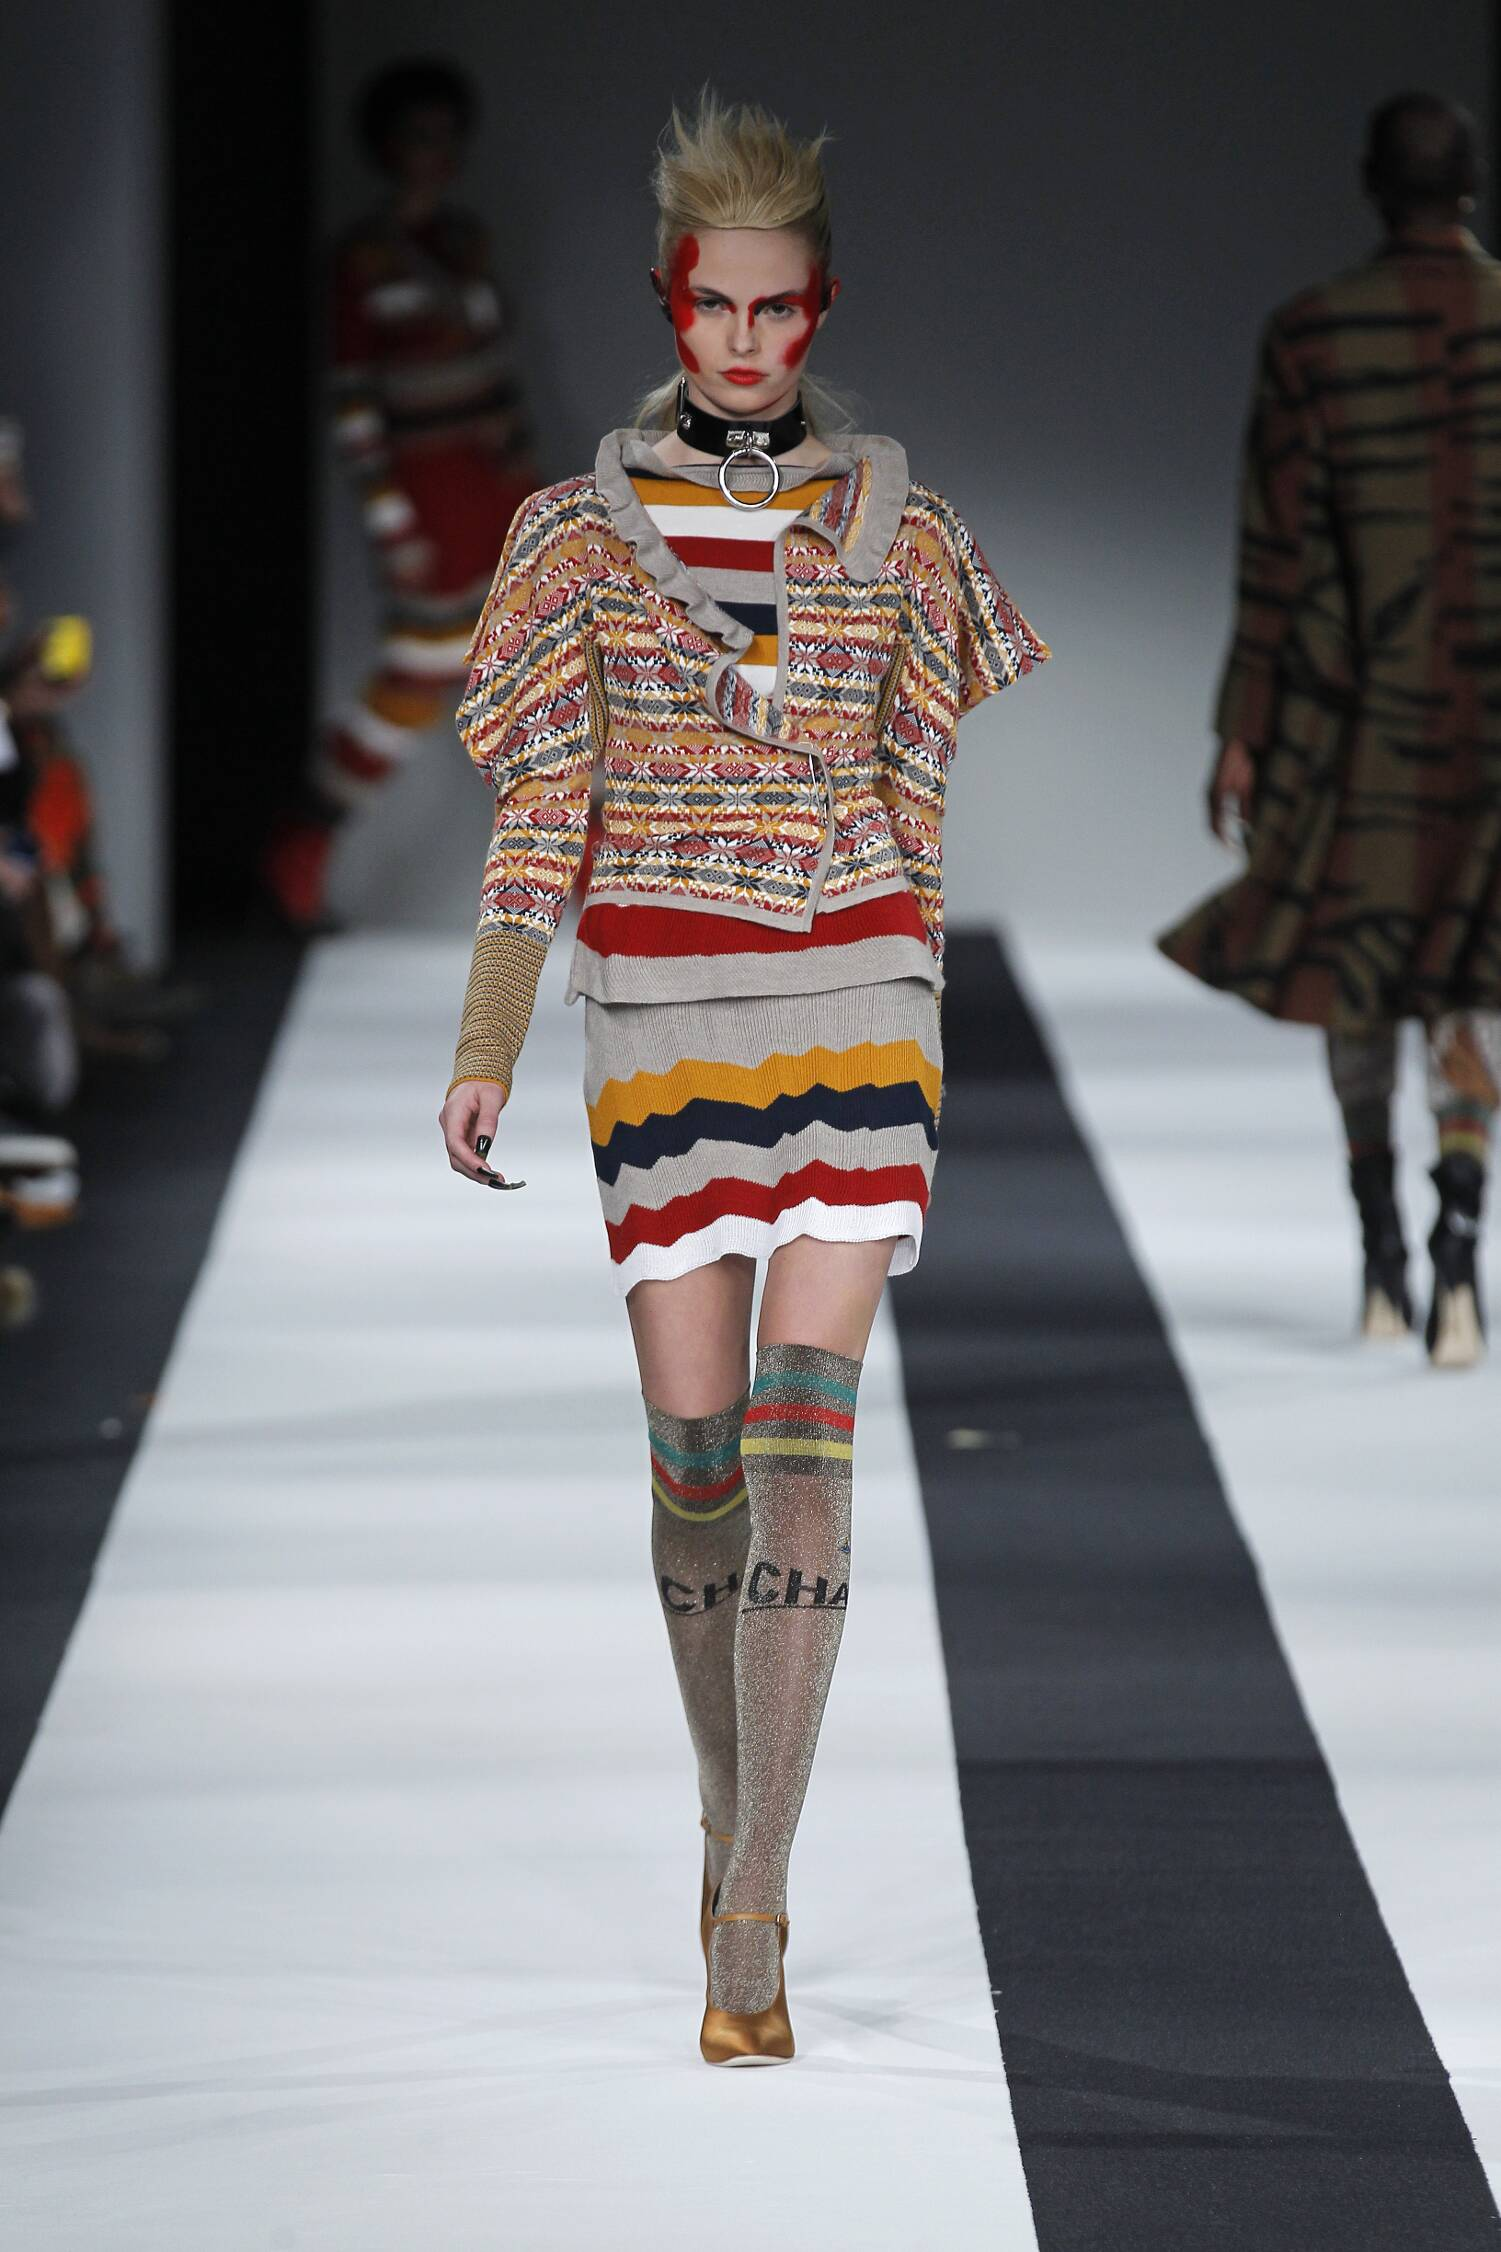 Fall 2015 Women Fashion Show Vivienne Westwood Red Label Collection